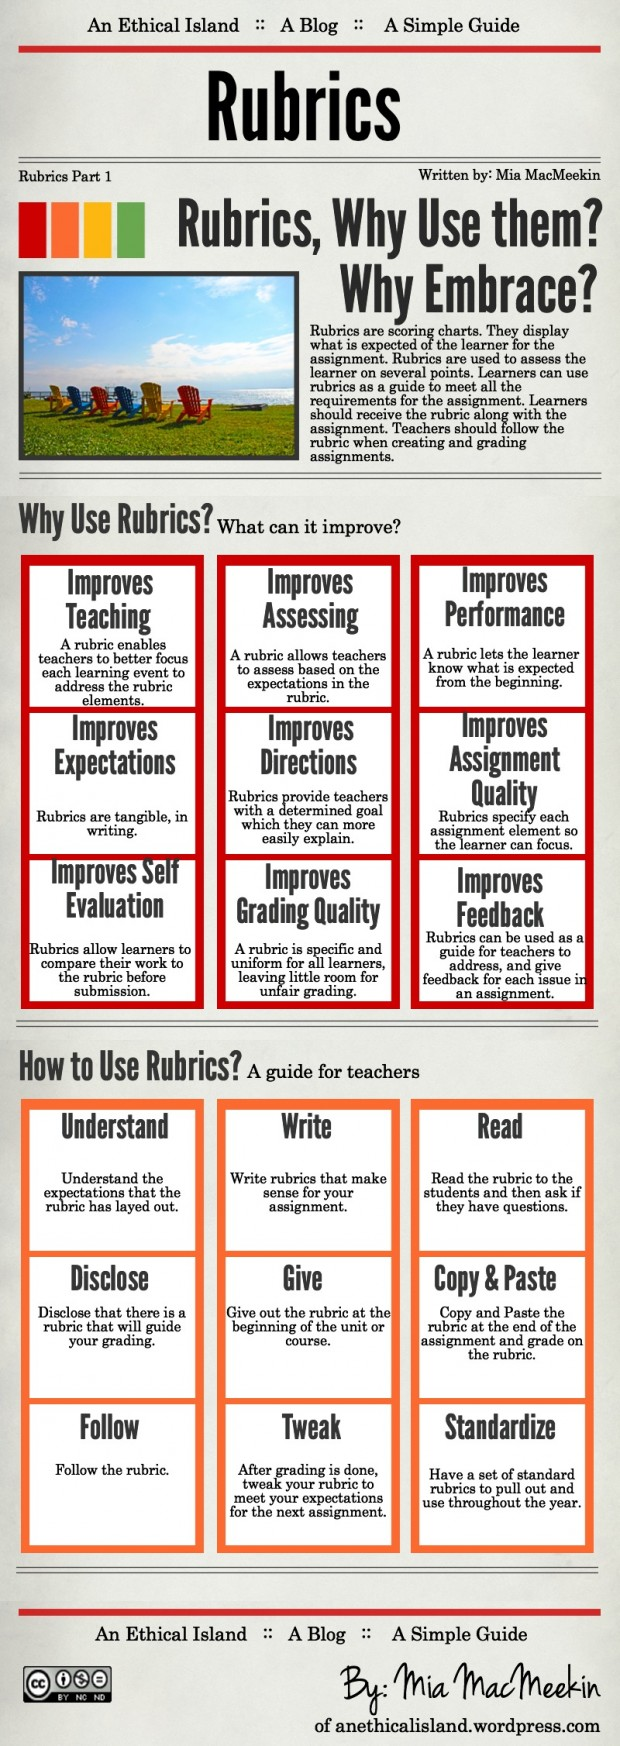 Wonderful Guide to The Use of Rubrics in Education ~ Educational Technology and Mobile Learning